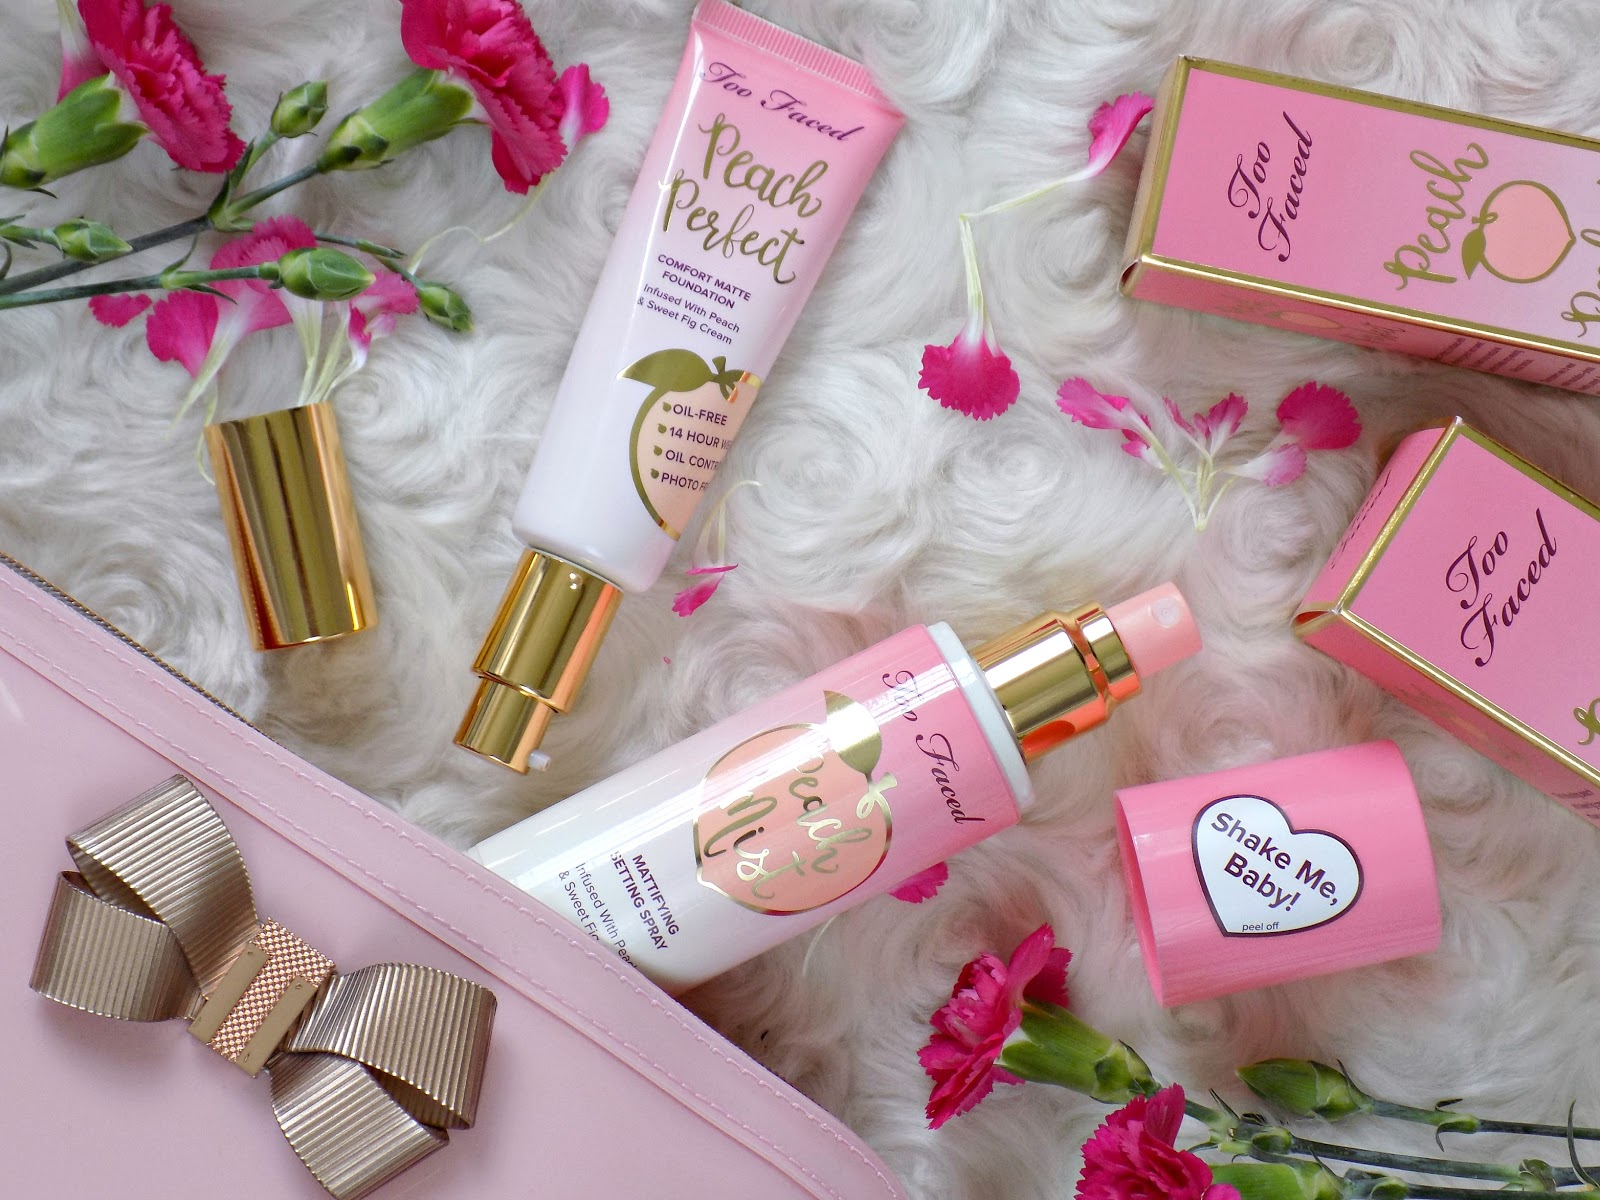 Too Faced Peach Perfect Comfort Matte Foundation,Too Faced Peach Perfect Mattifying Setting Spray